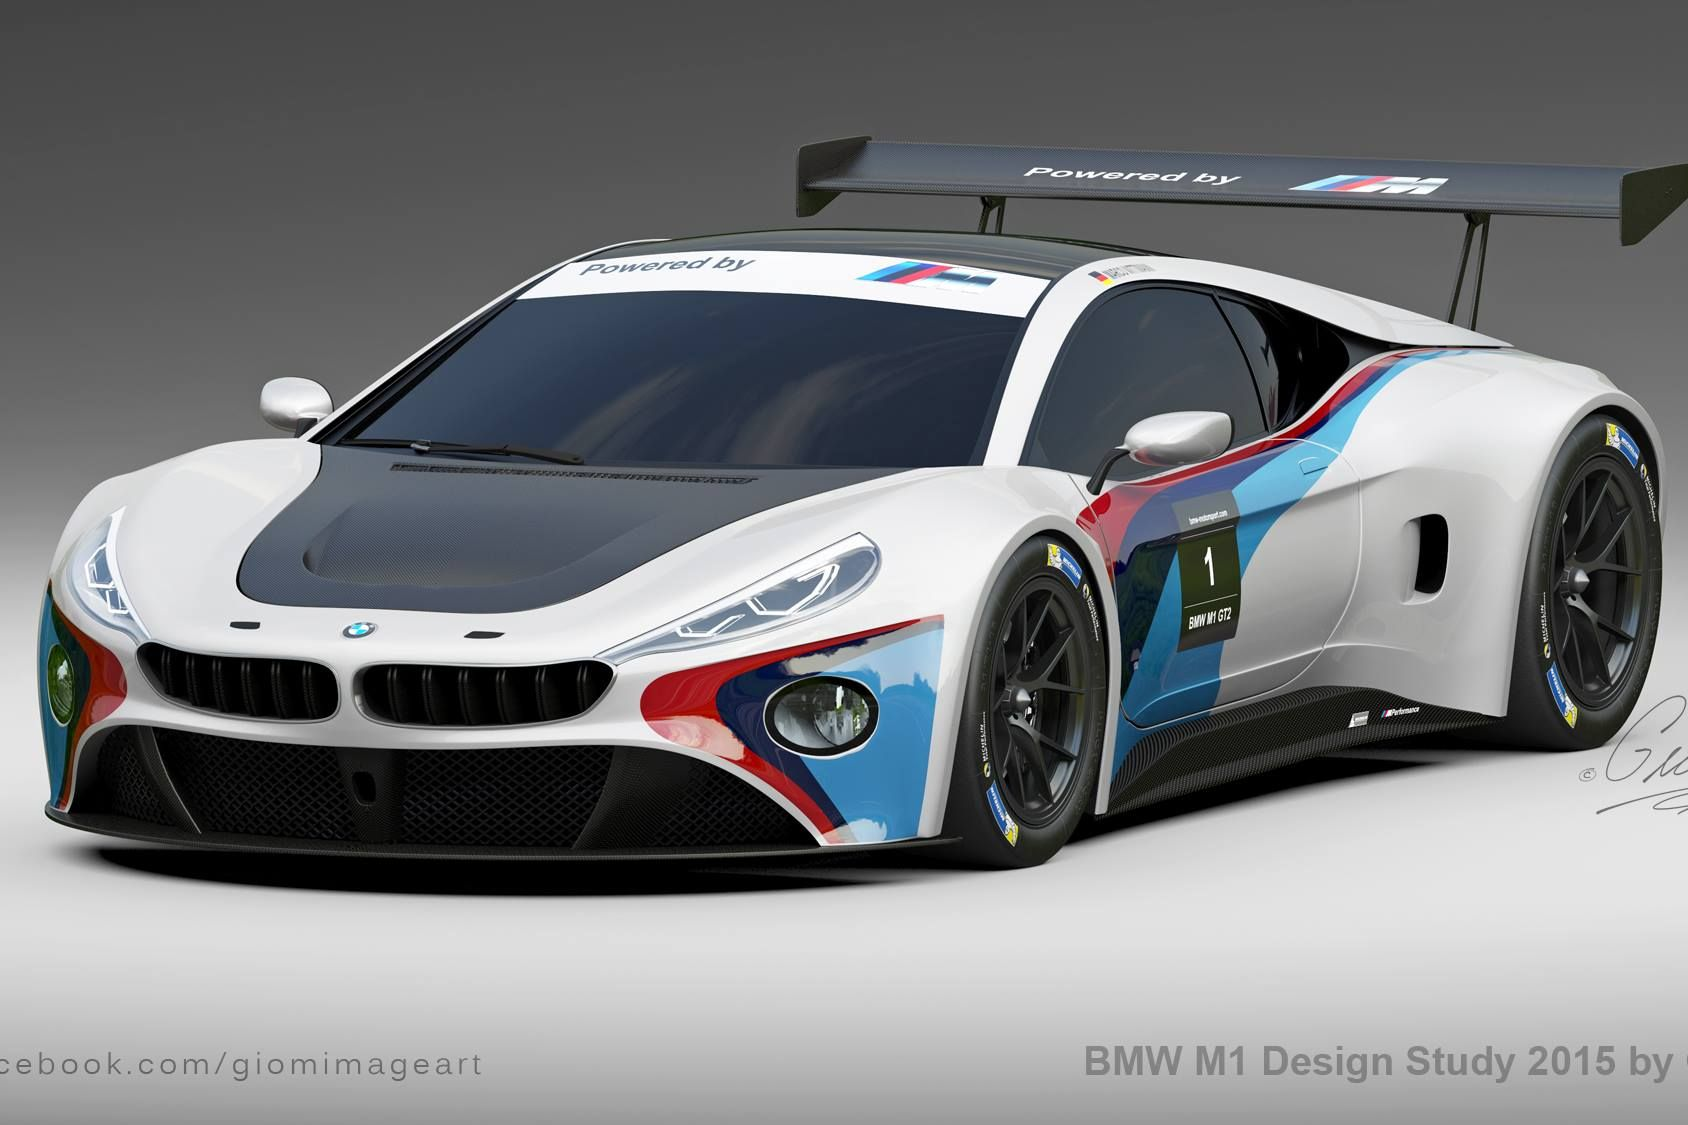 Head Inside To Gtspirit To Check Out Some Renderings Of A Futuristic Bmw M1 Supercar Bmw M1 Bmw Super Cars